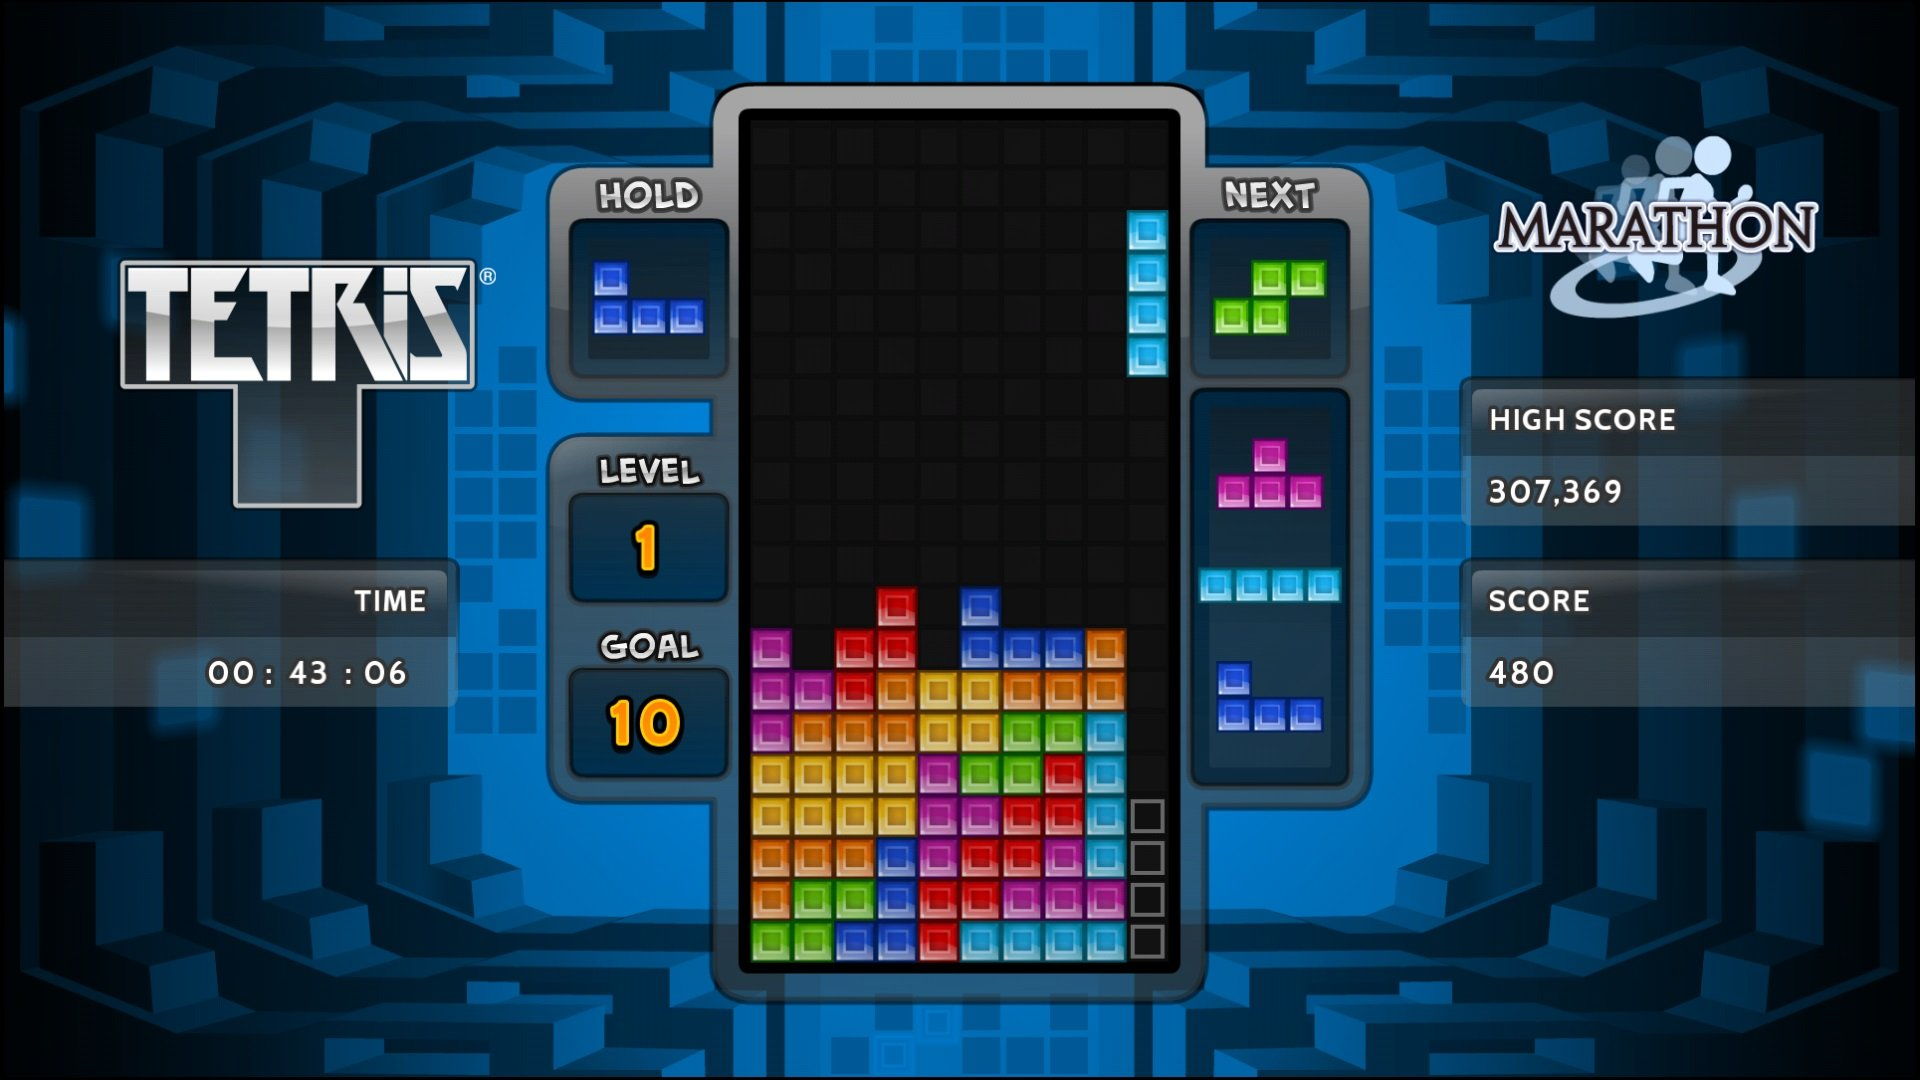 Test Your Knowledge With This Tetris Quiz